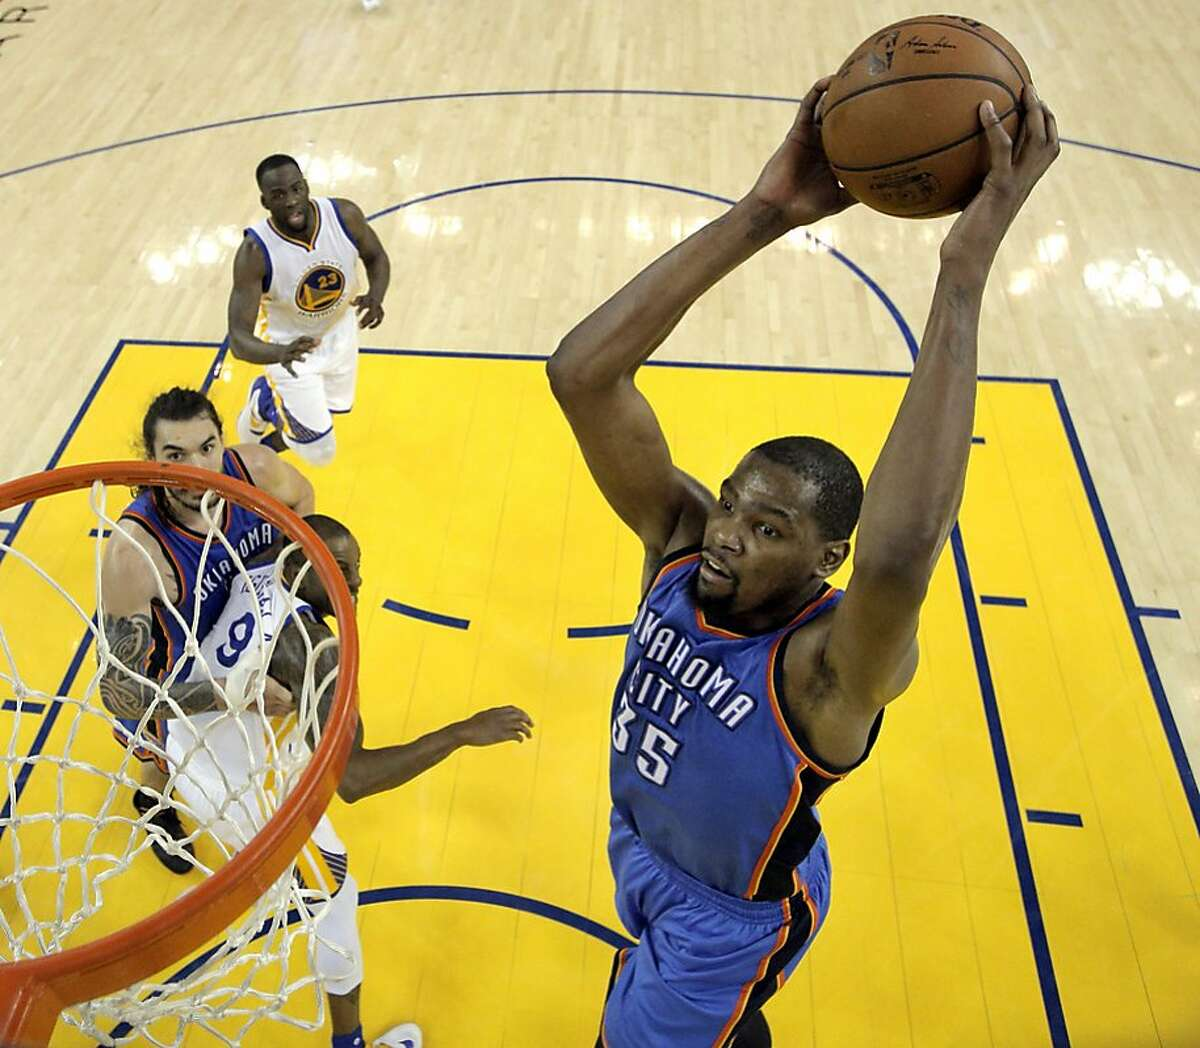 Arriving: Center/forward Kevin Durant from the Oklahoma City Thunder